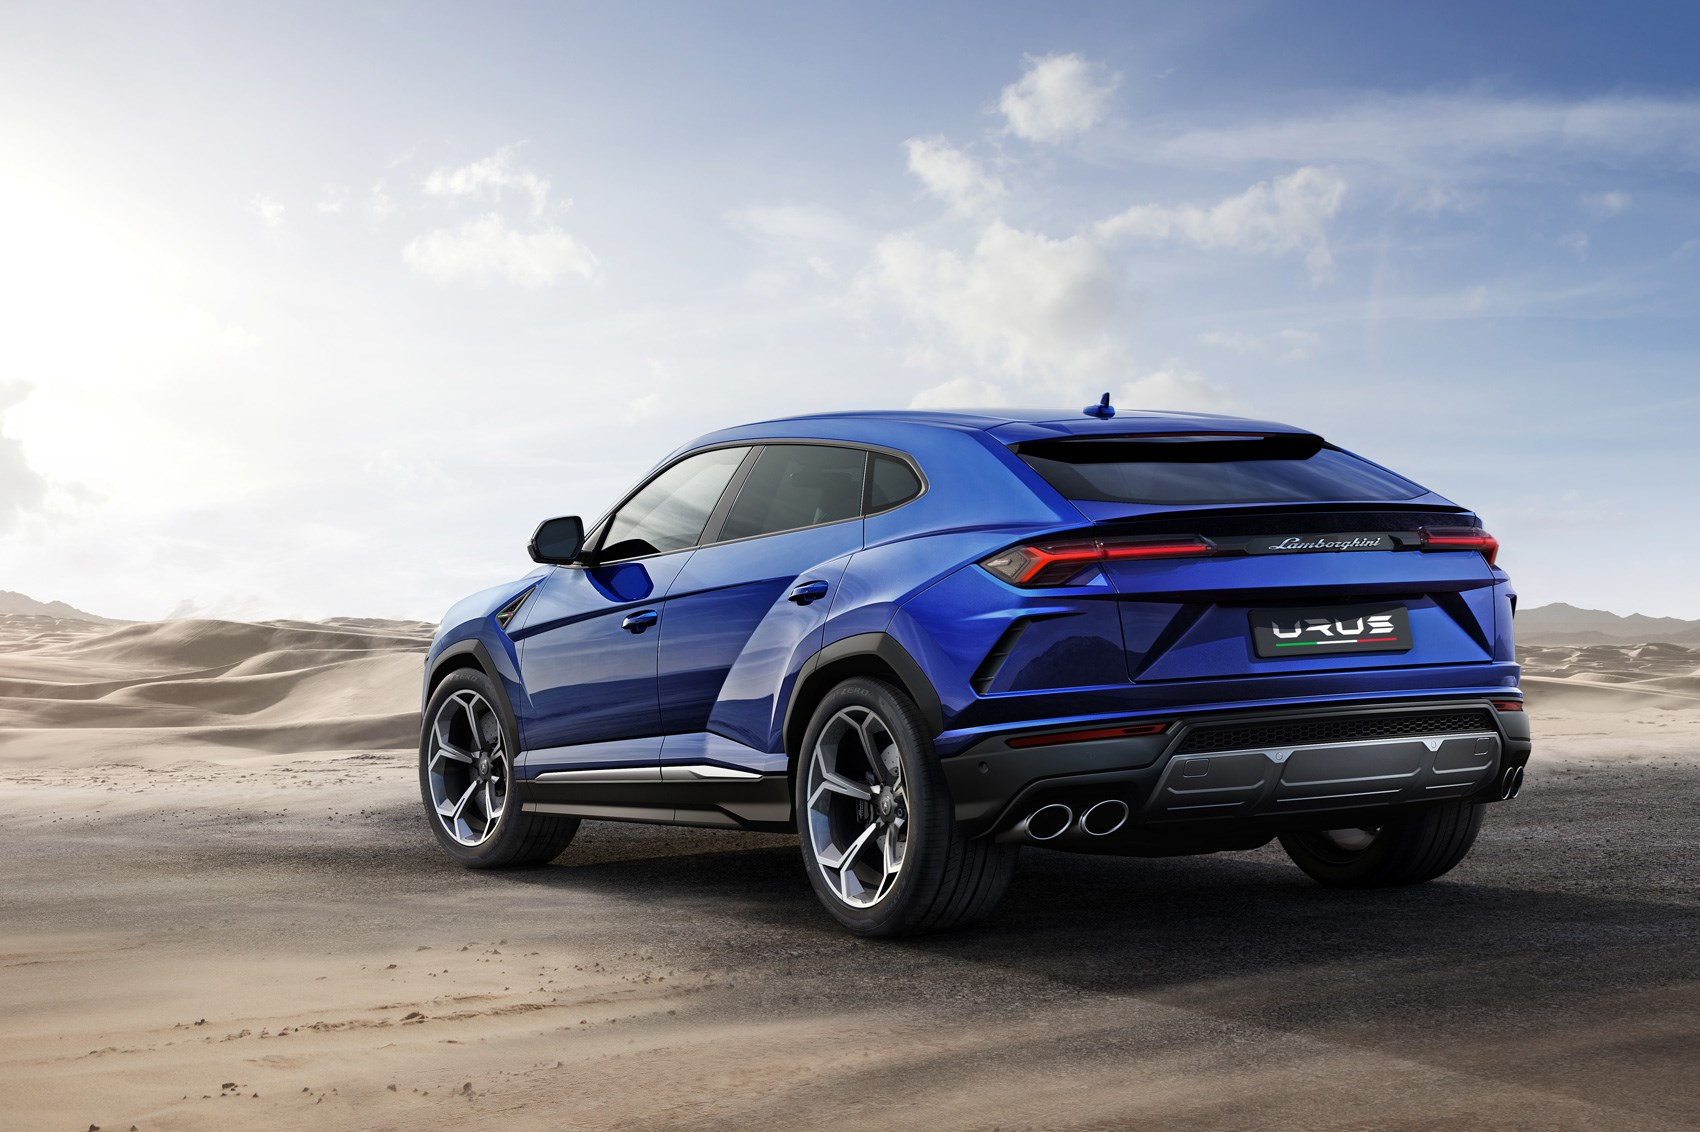 lamborghini urus 2018 suv everything you need to know by car magazine. Black Bedroom Furniture Sets. Home Design Ideas